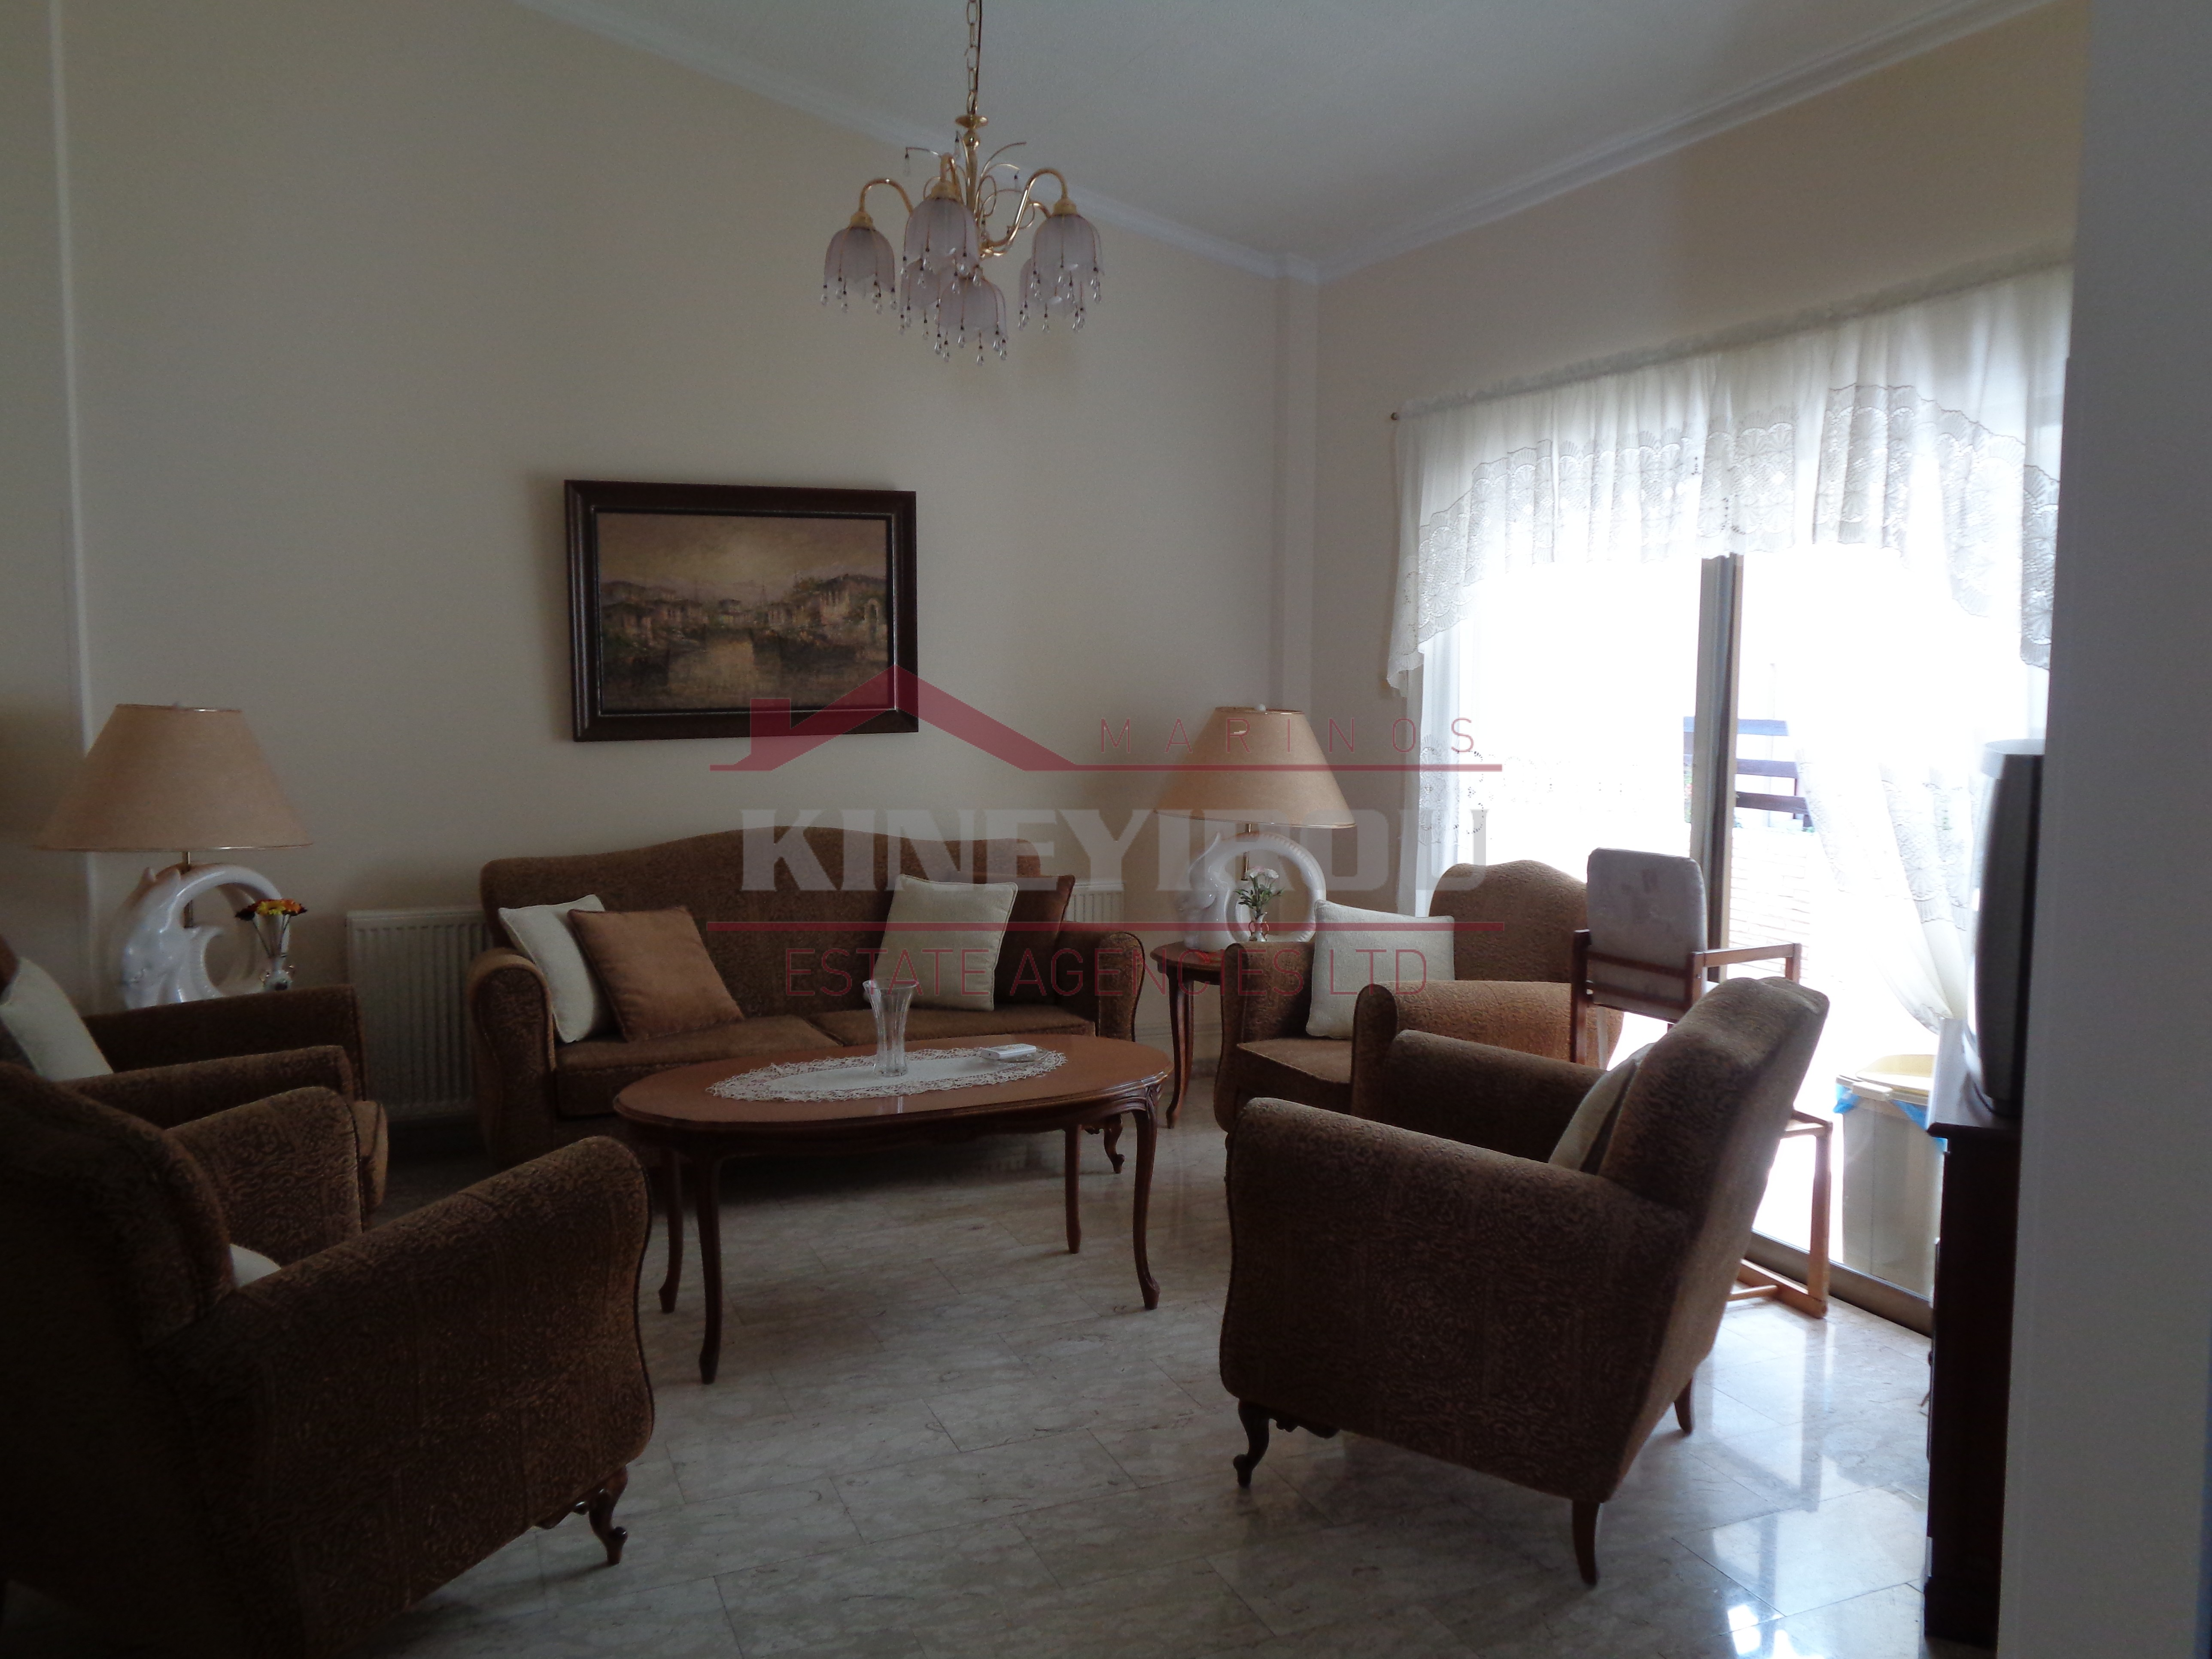 Three Bedroom Upper House for Rent, in The Center of Larnaca